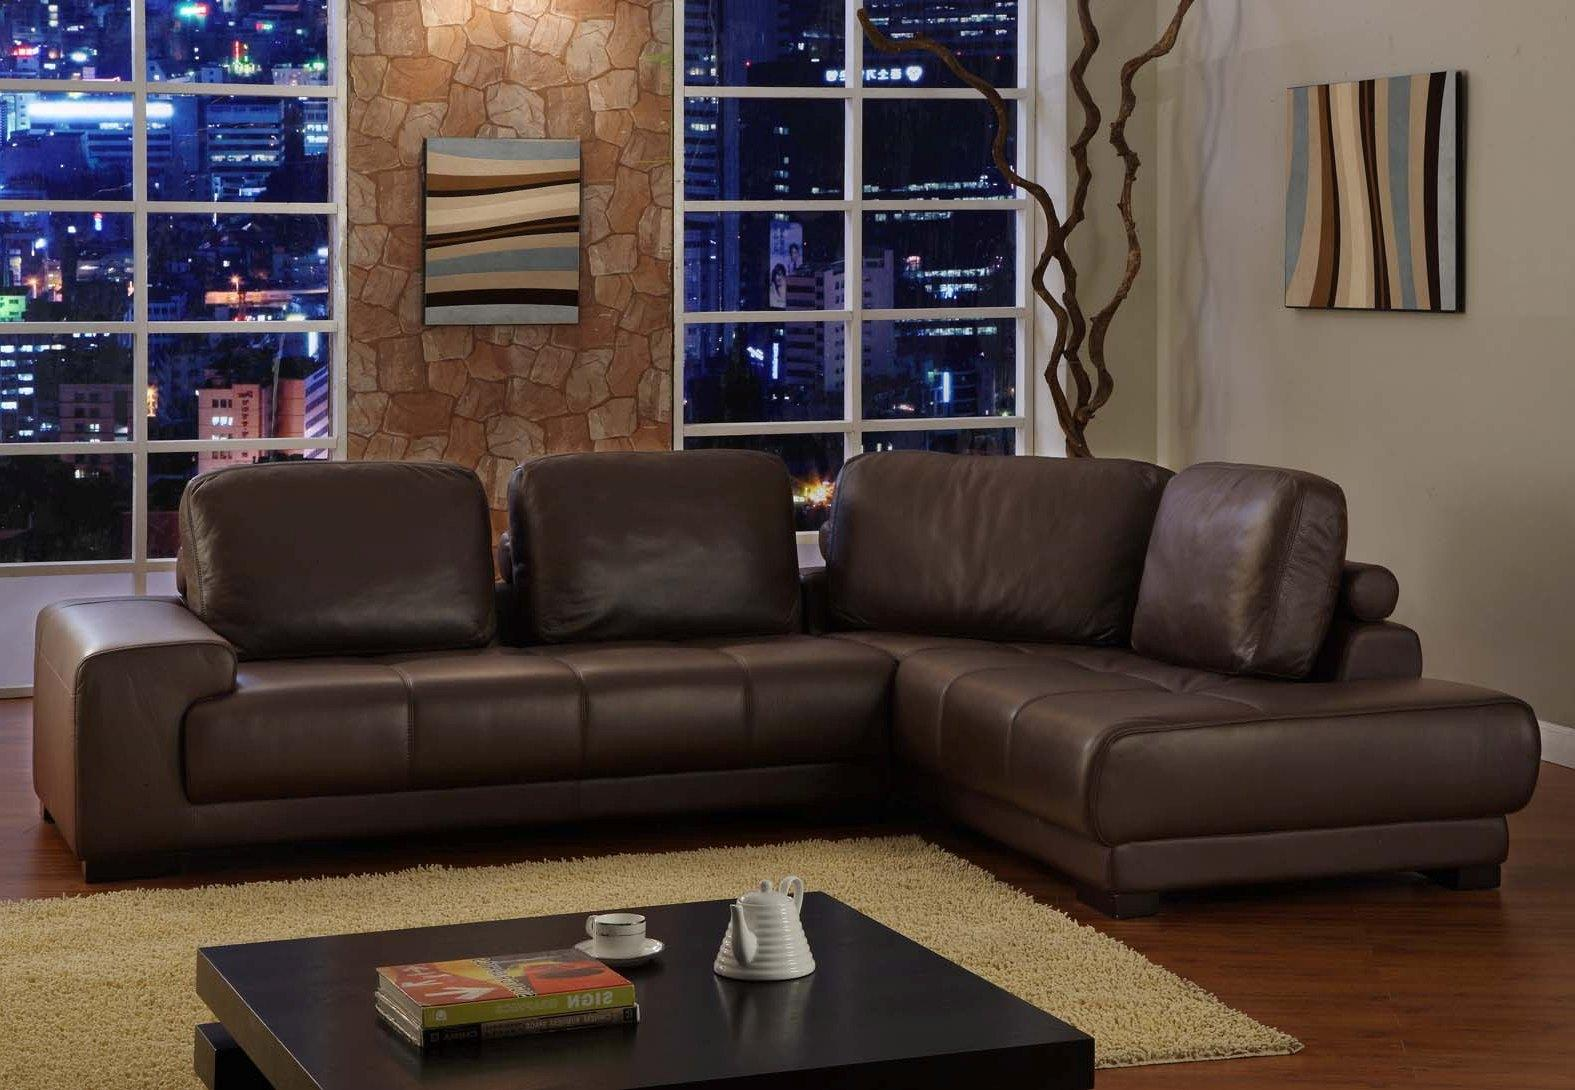 Marvelous Sectional Sofa Clearance In Modern Design With Brown Rug And Square Coffee  Table Together With Stunning